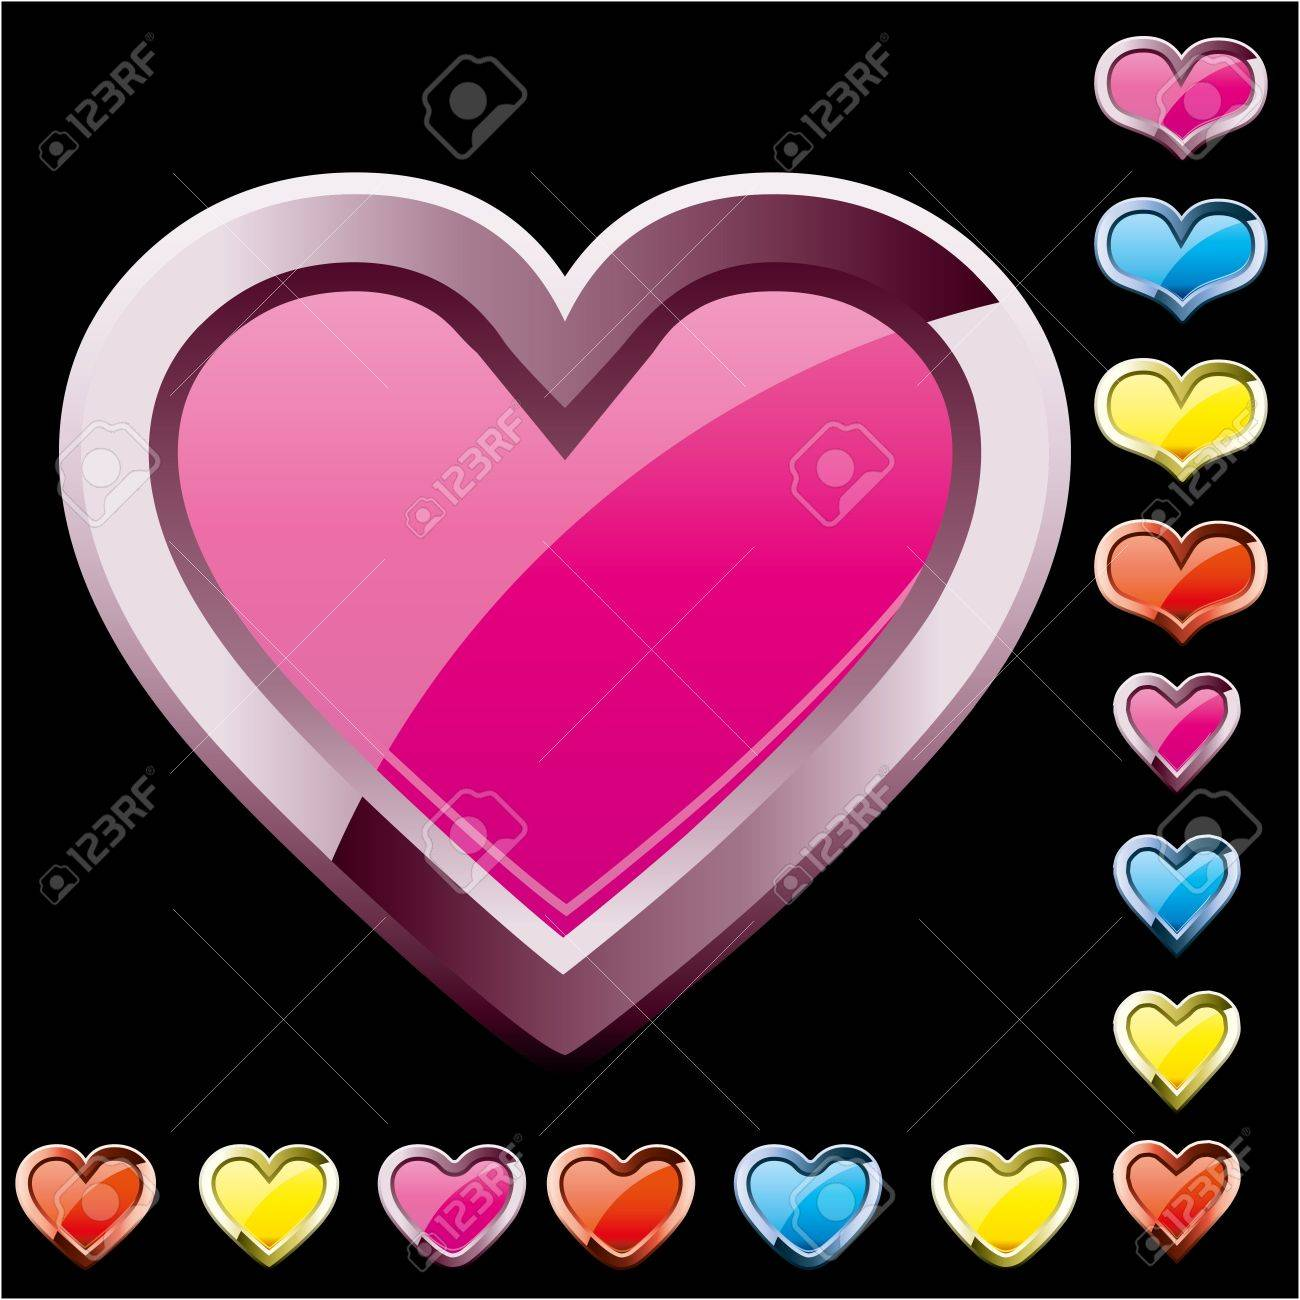 Set of colored heart shape icons, vector illustration Stock Vector - 16352200